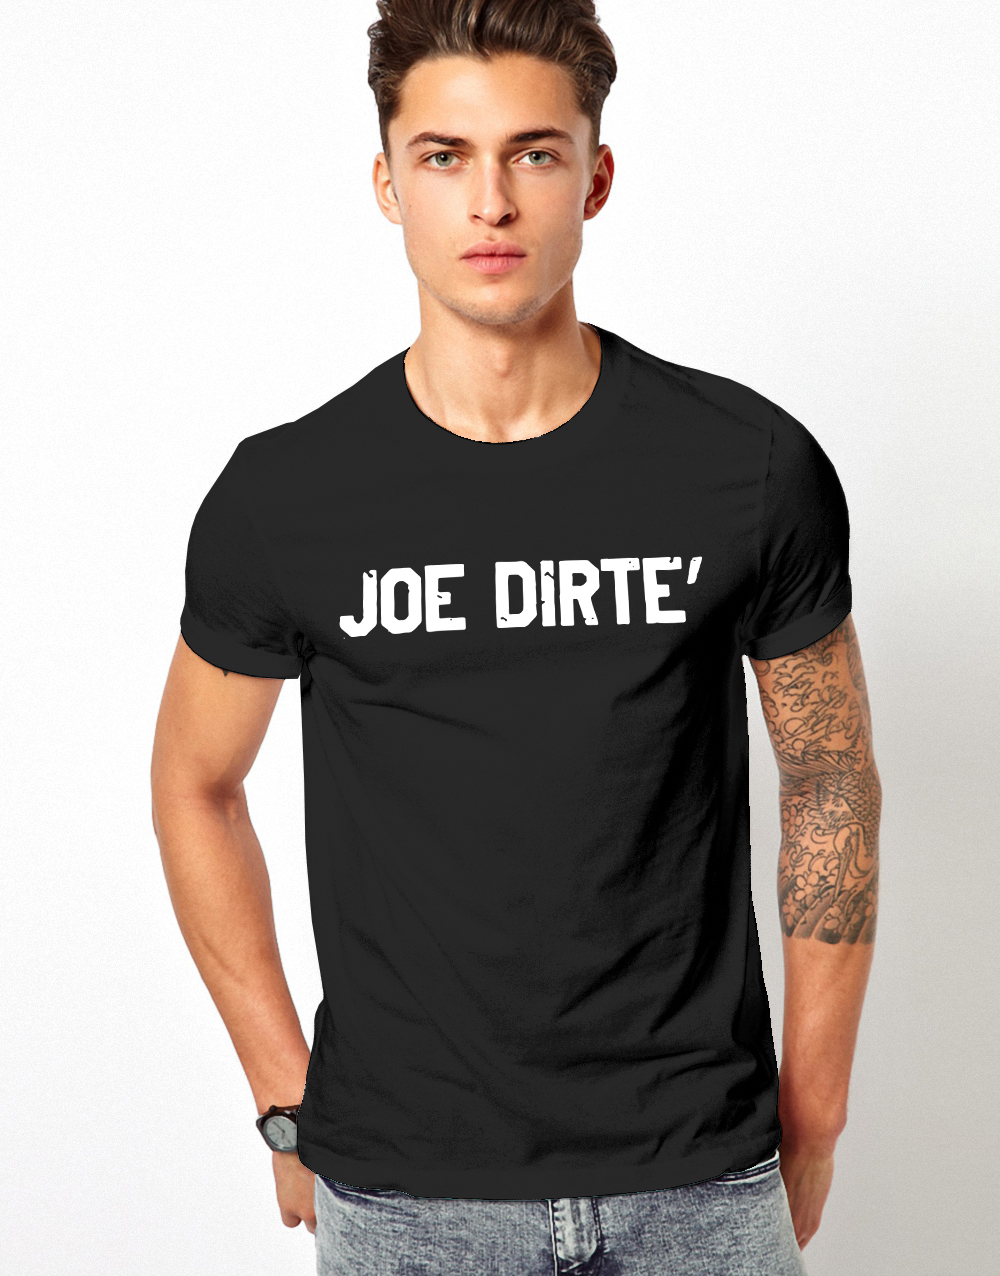 Official Joe dirte' shirt